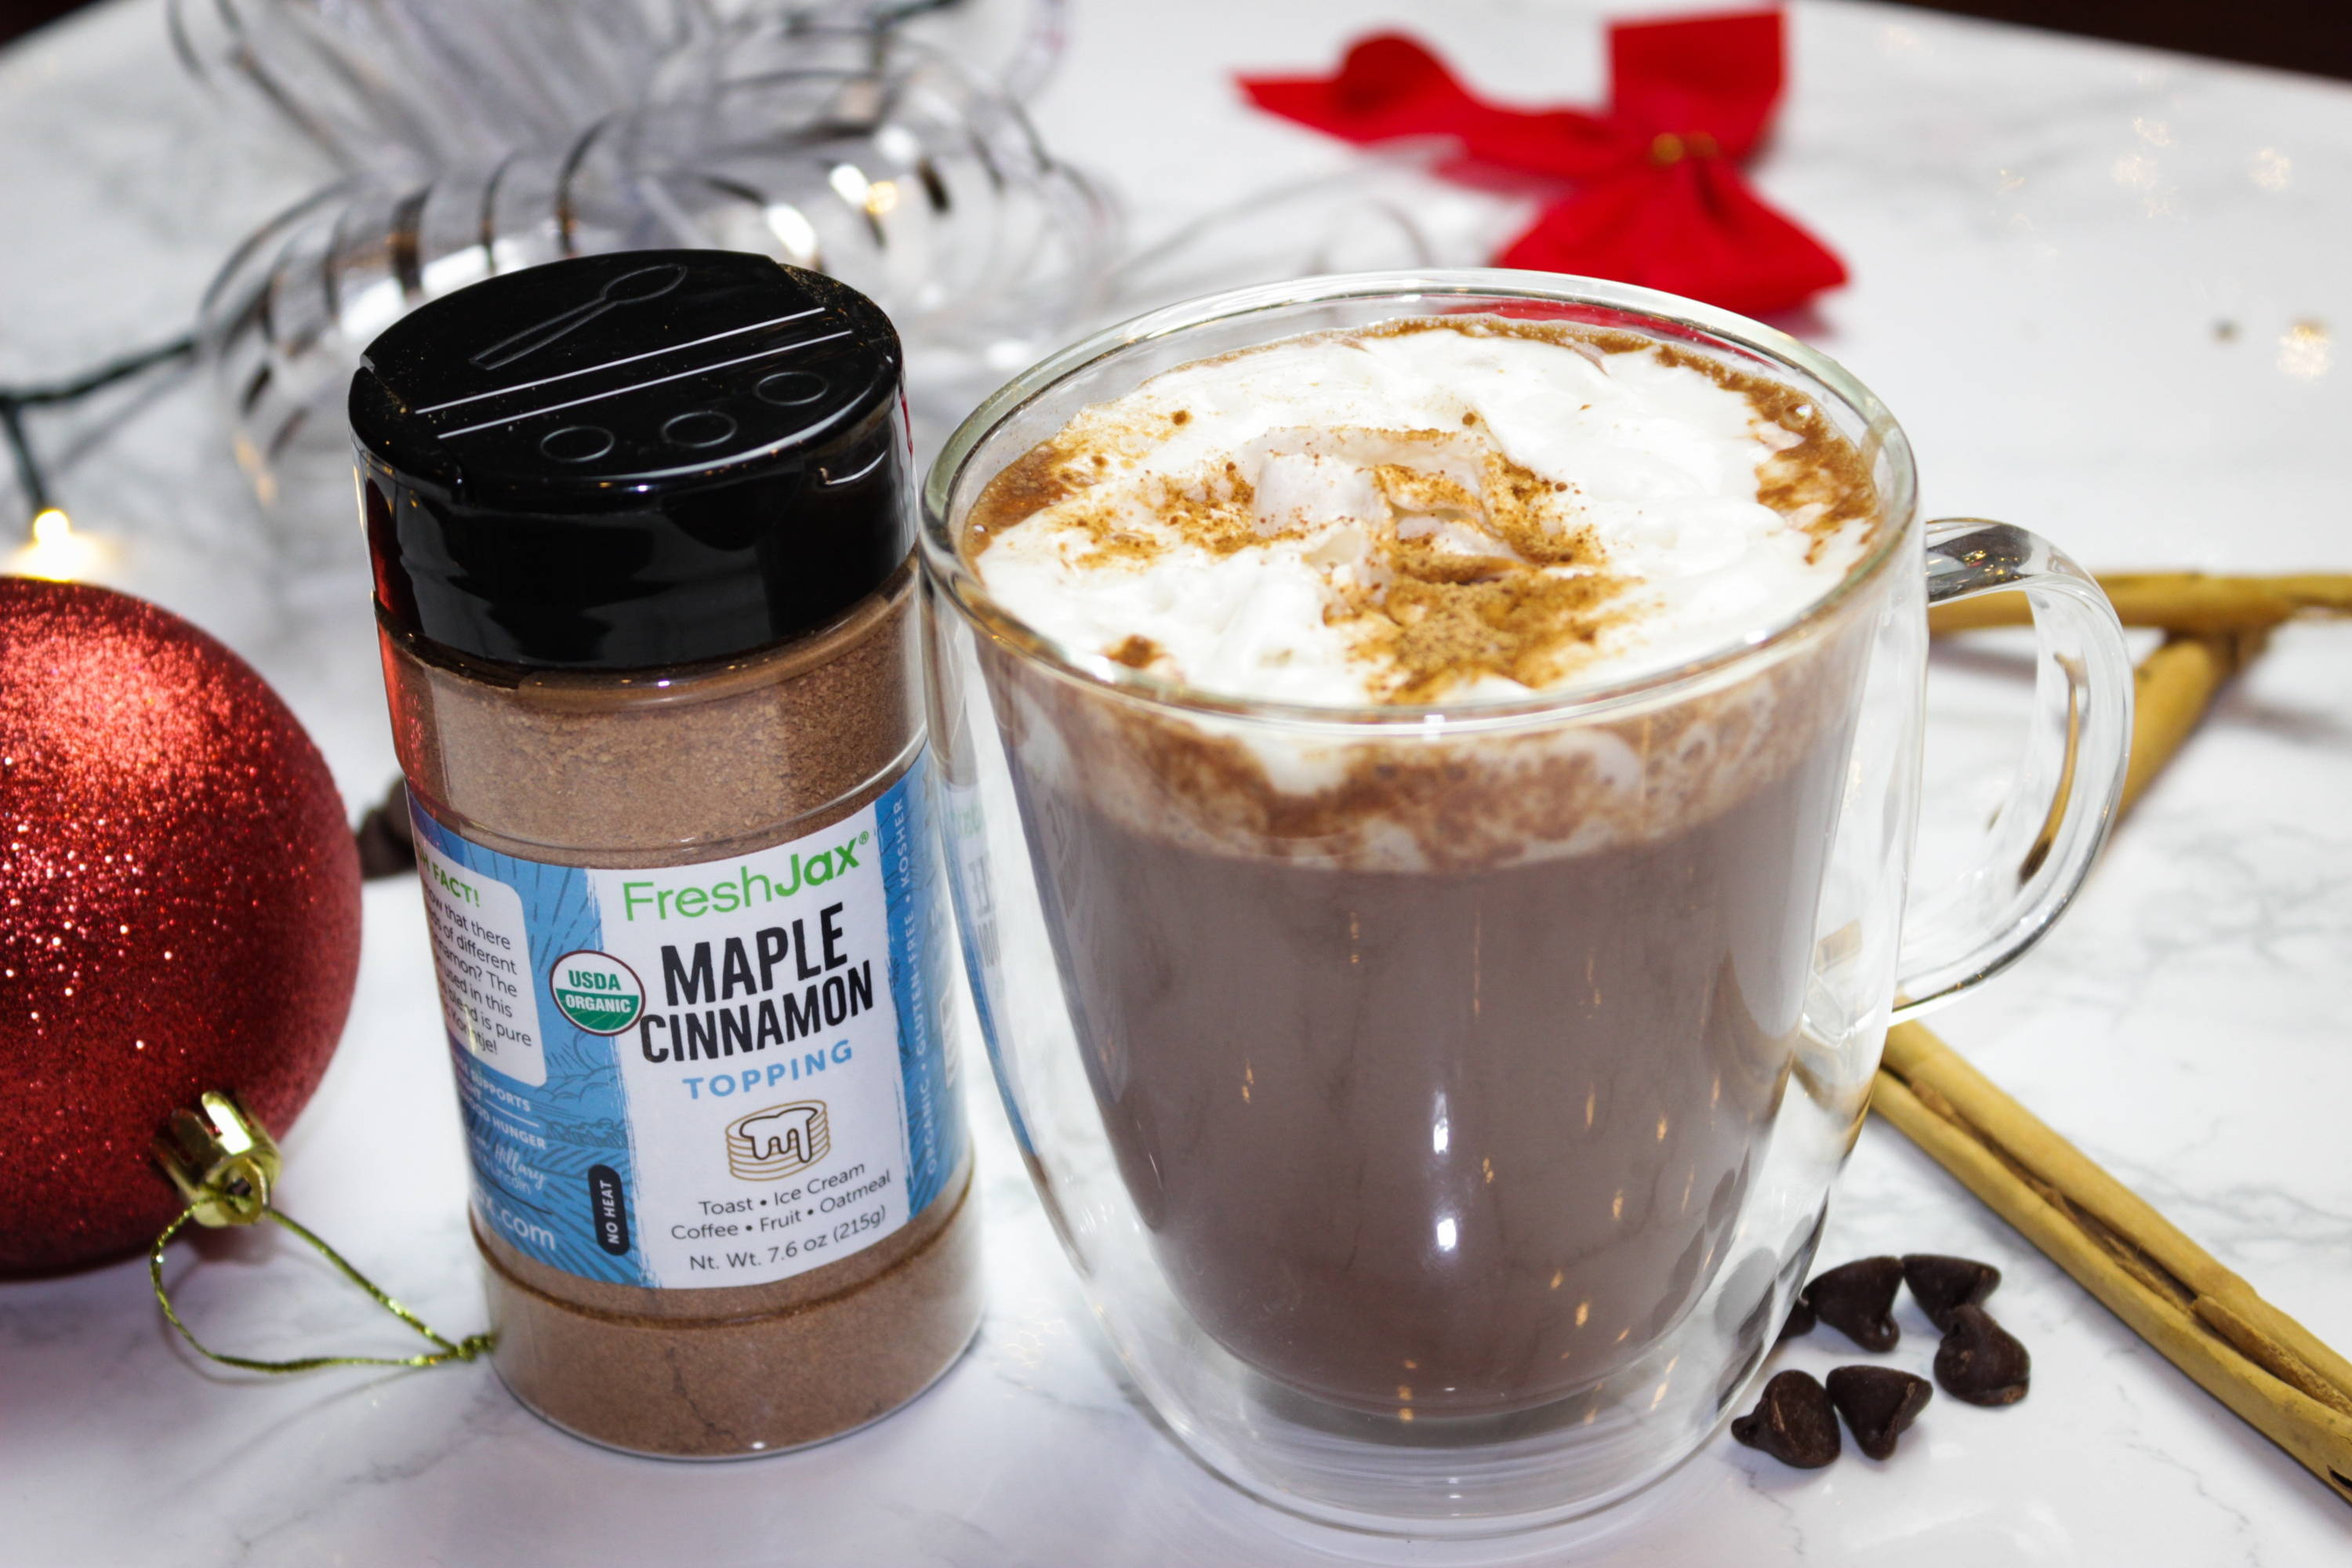 A large bottle of FreshJax Organic Maple Cinnamon Topping next to a mug of vegan hot cocoa topped with whipped cream and maple cinnamon. With a holiday themed background.